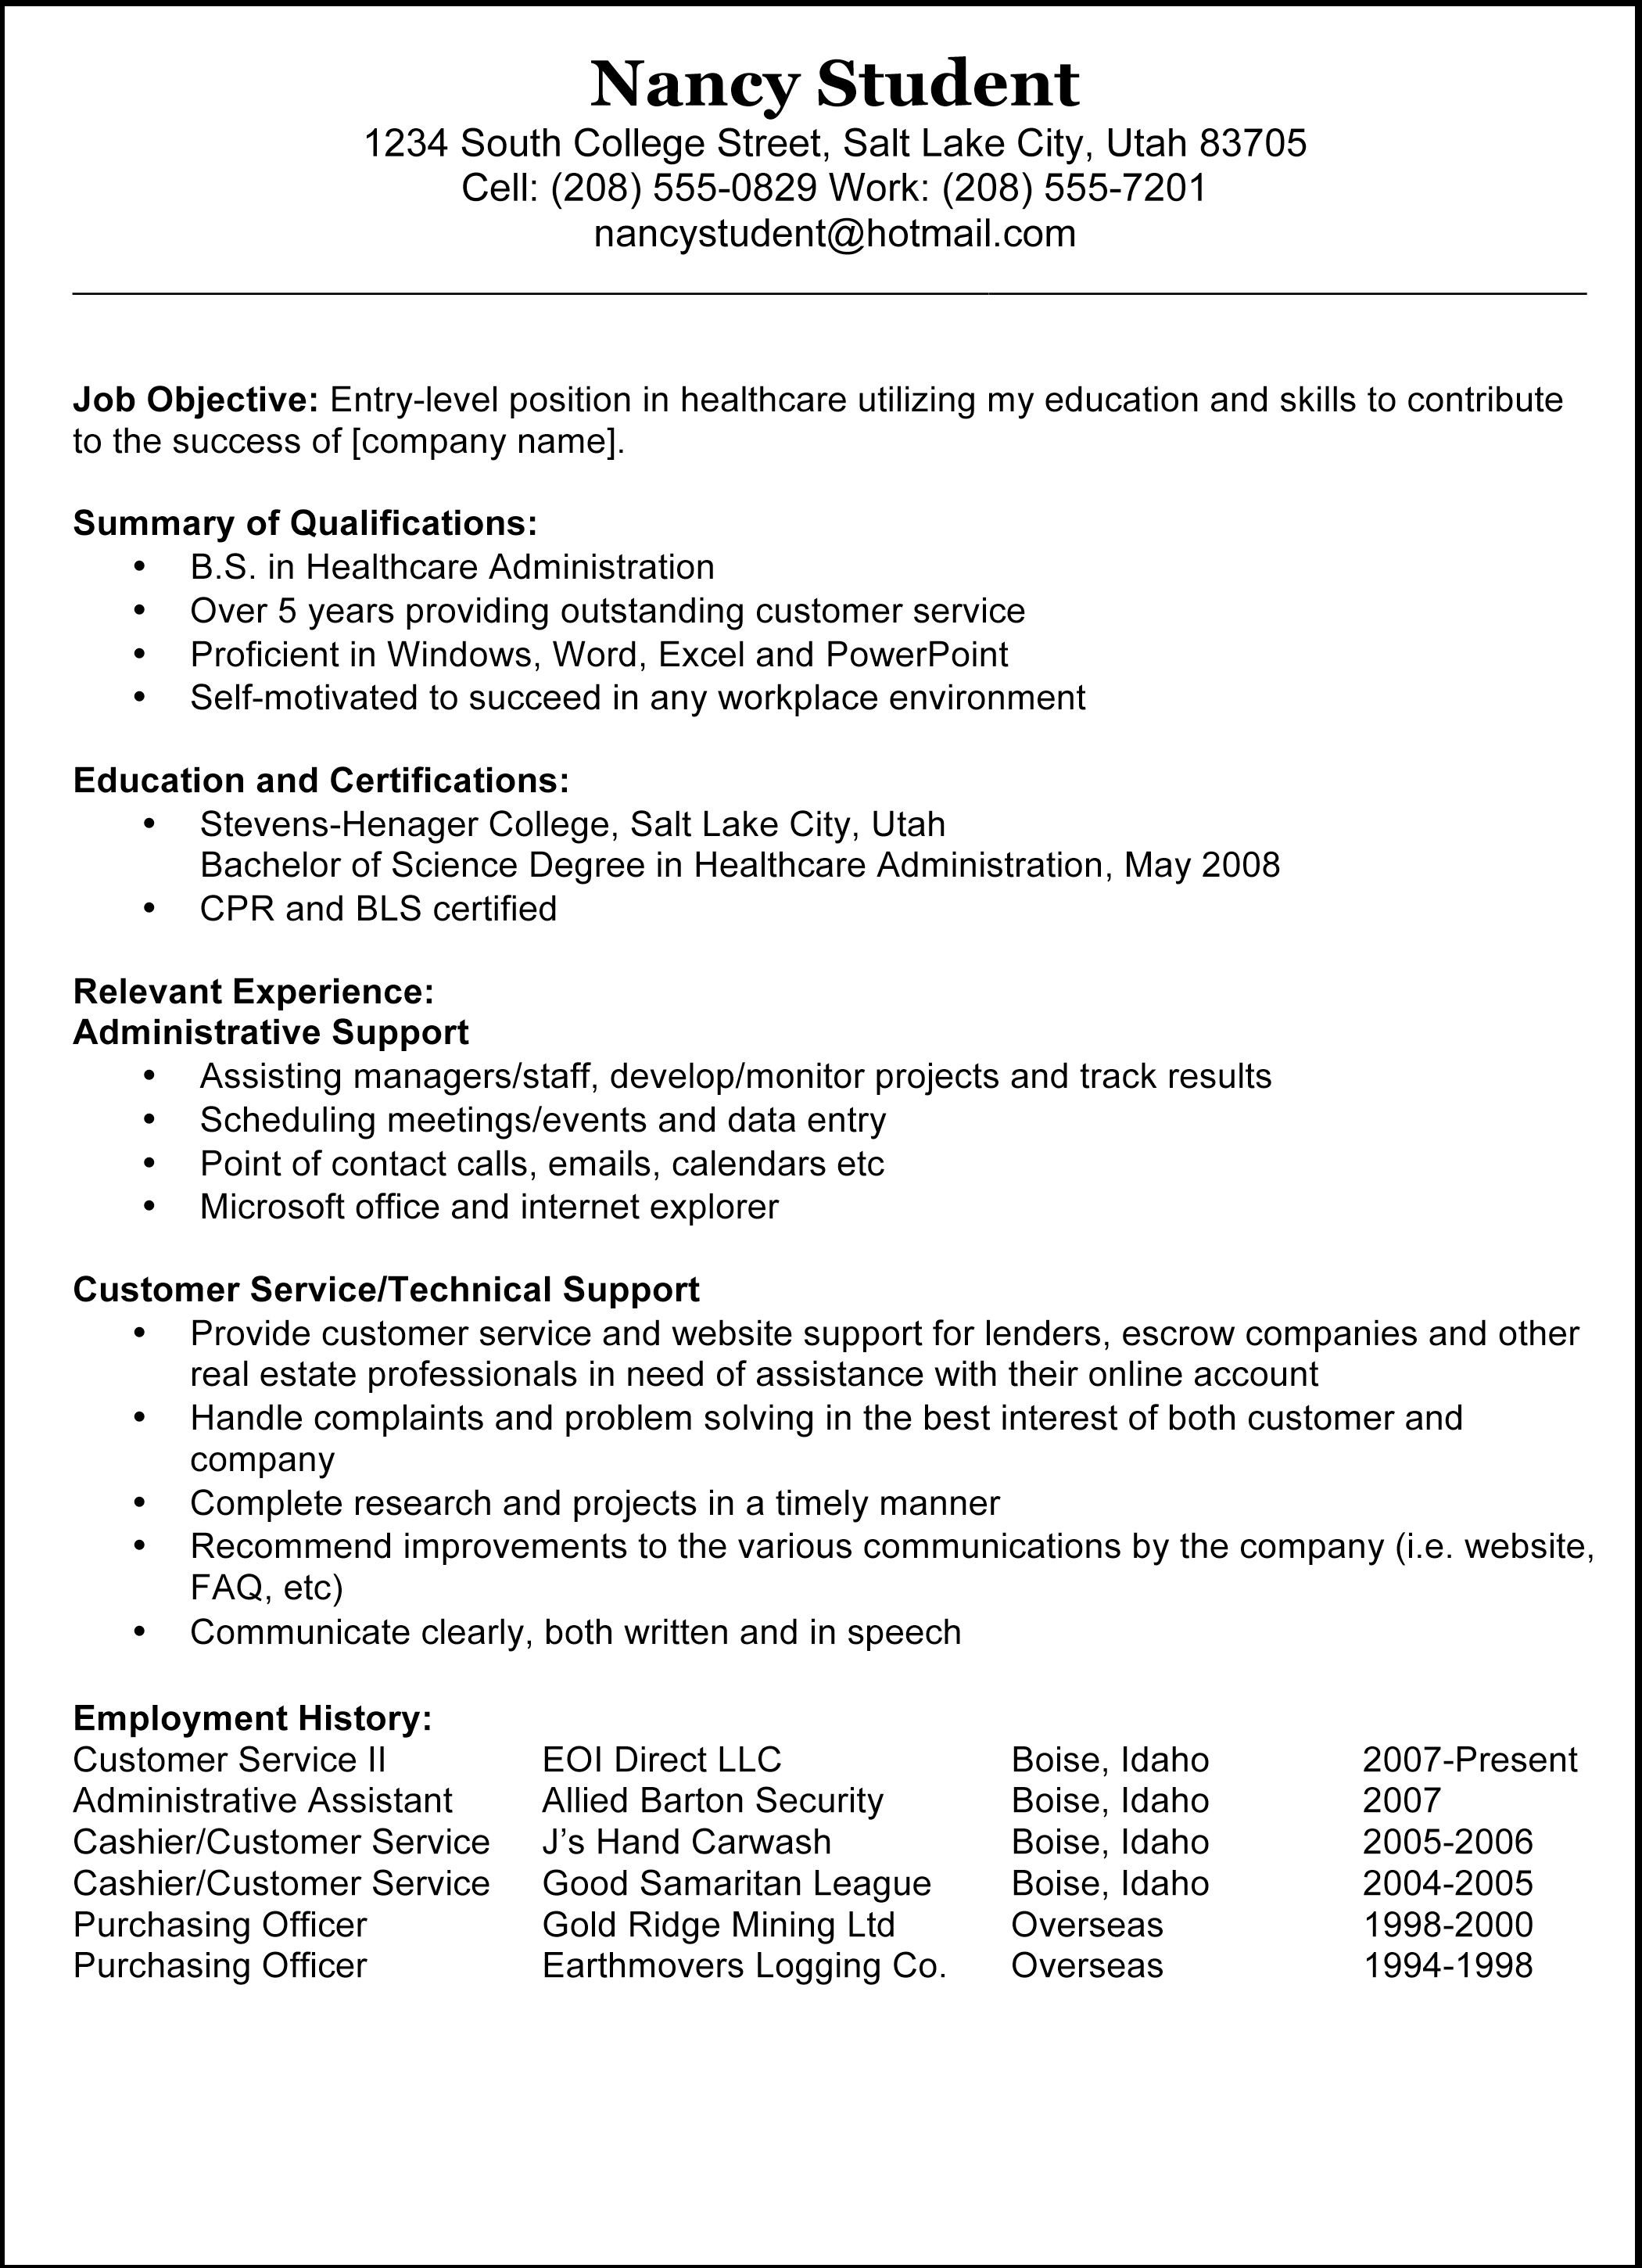 Resume Professional Summary Examples Fair Copy Of 2014 Resume Sample  Click On The Document For An Editable